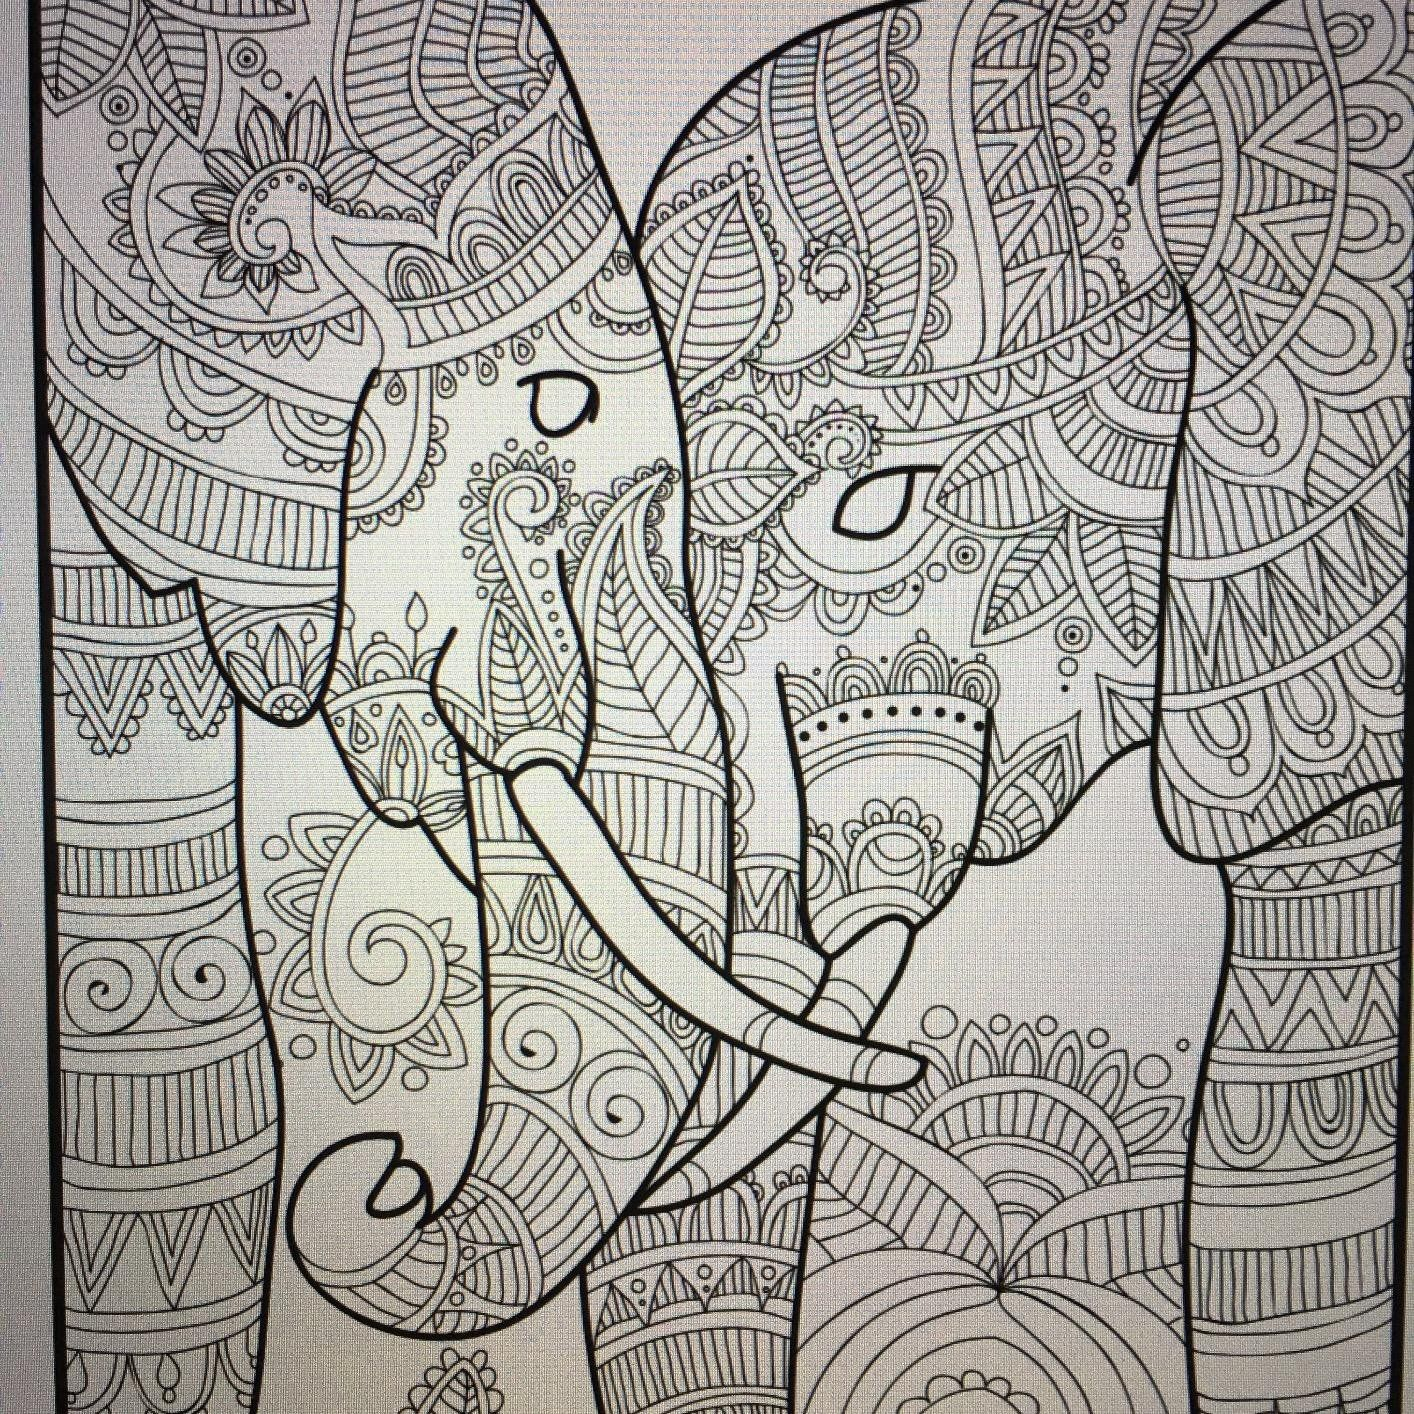 Amazon Elegant Elephants An Adult Coloring Book With Elephant Mandala Designs And